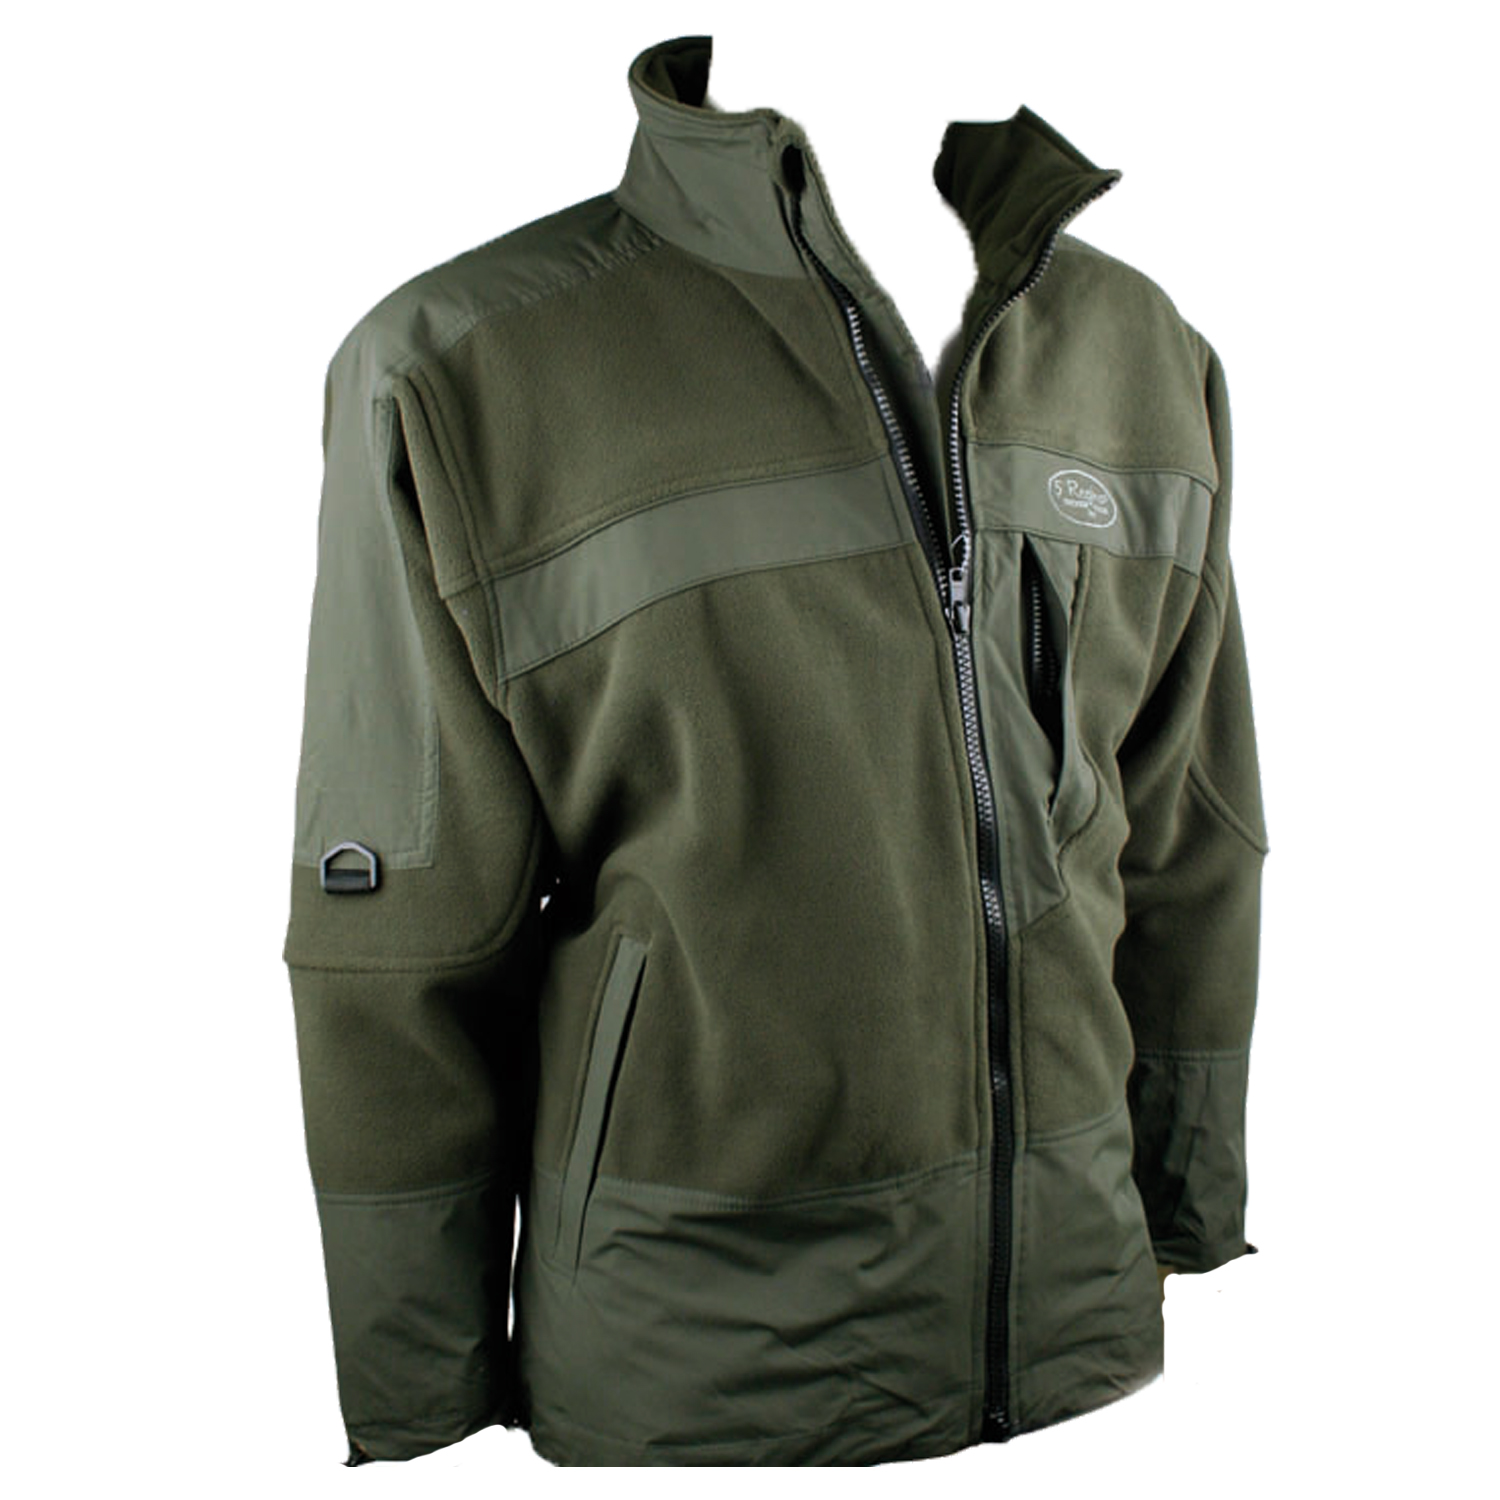 Jacket jacket anti-pilling wool waterproof breathable hunting outdoor snow man